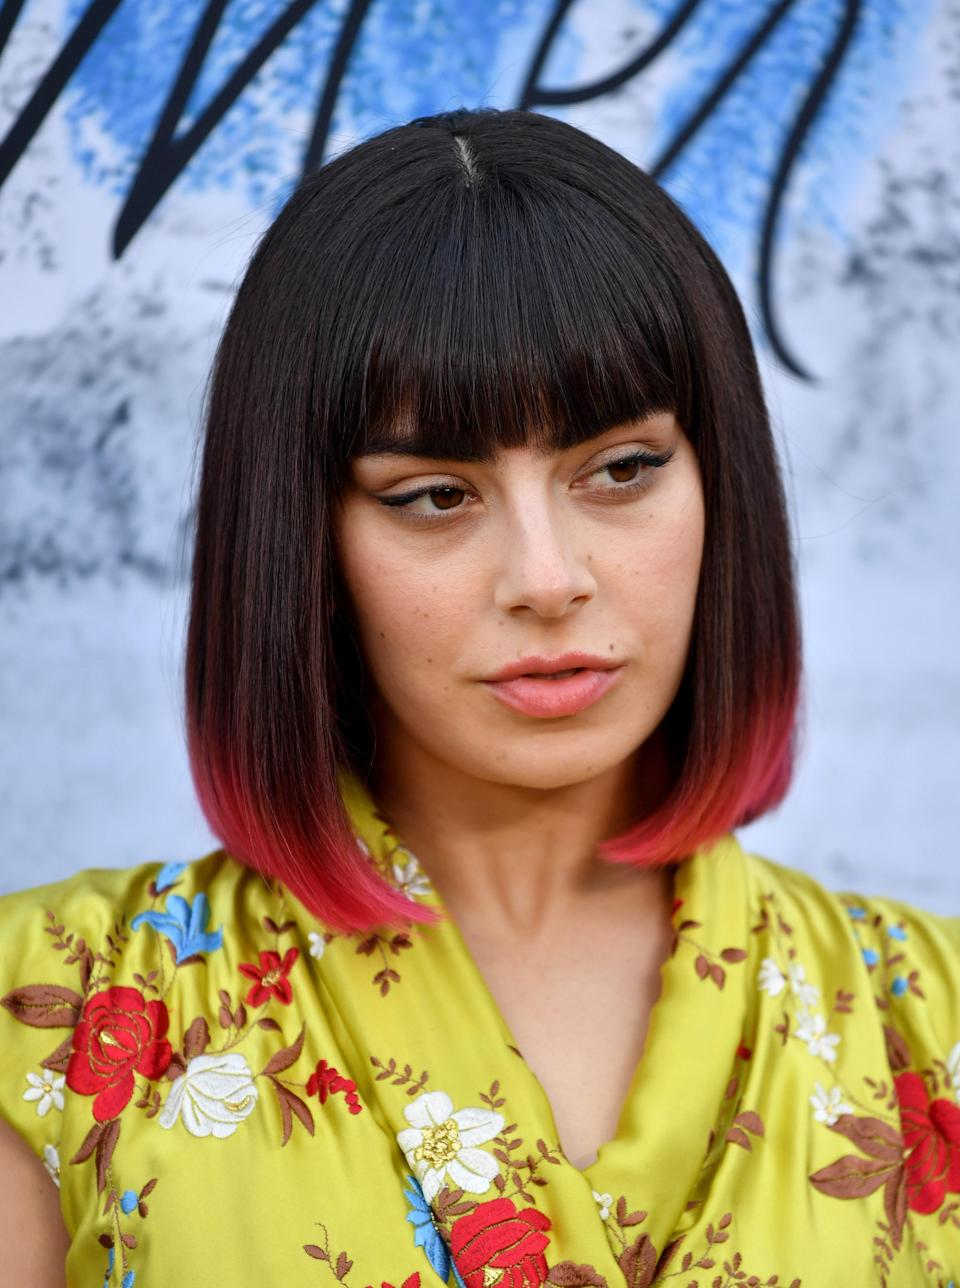 Charli XCX makes a sharp bob her own with bright pink tips and heavy bangs.